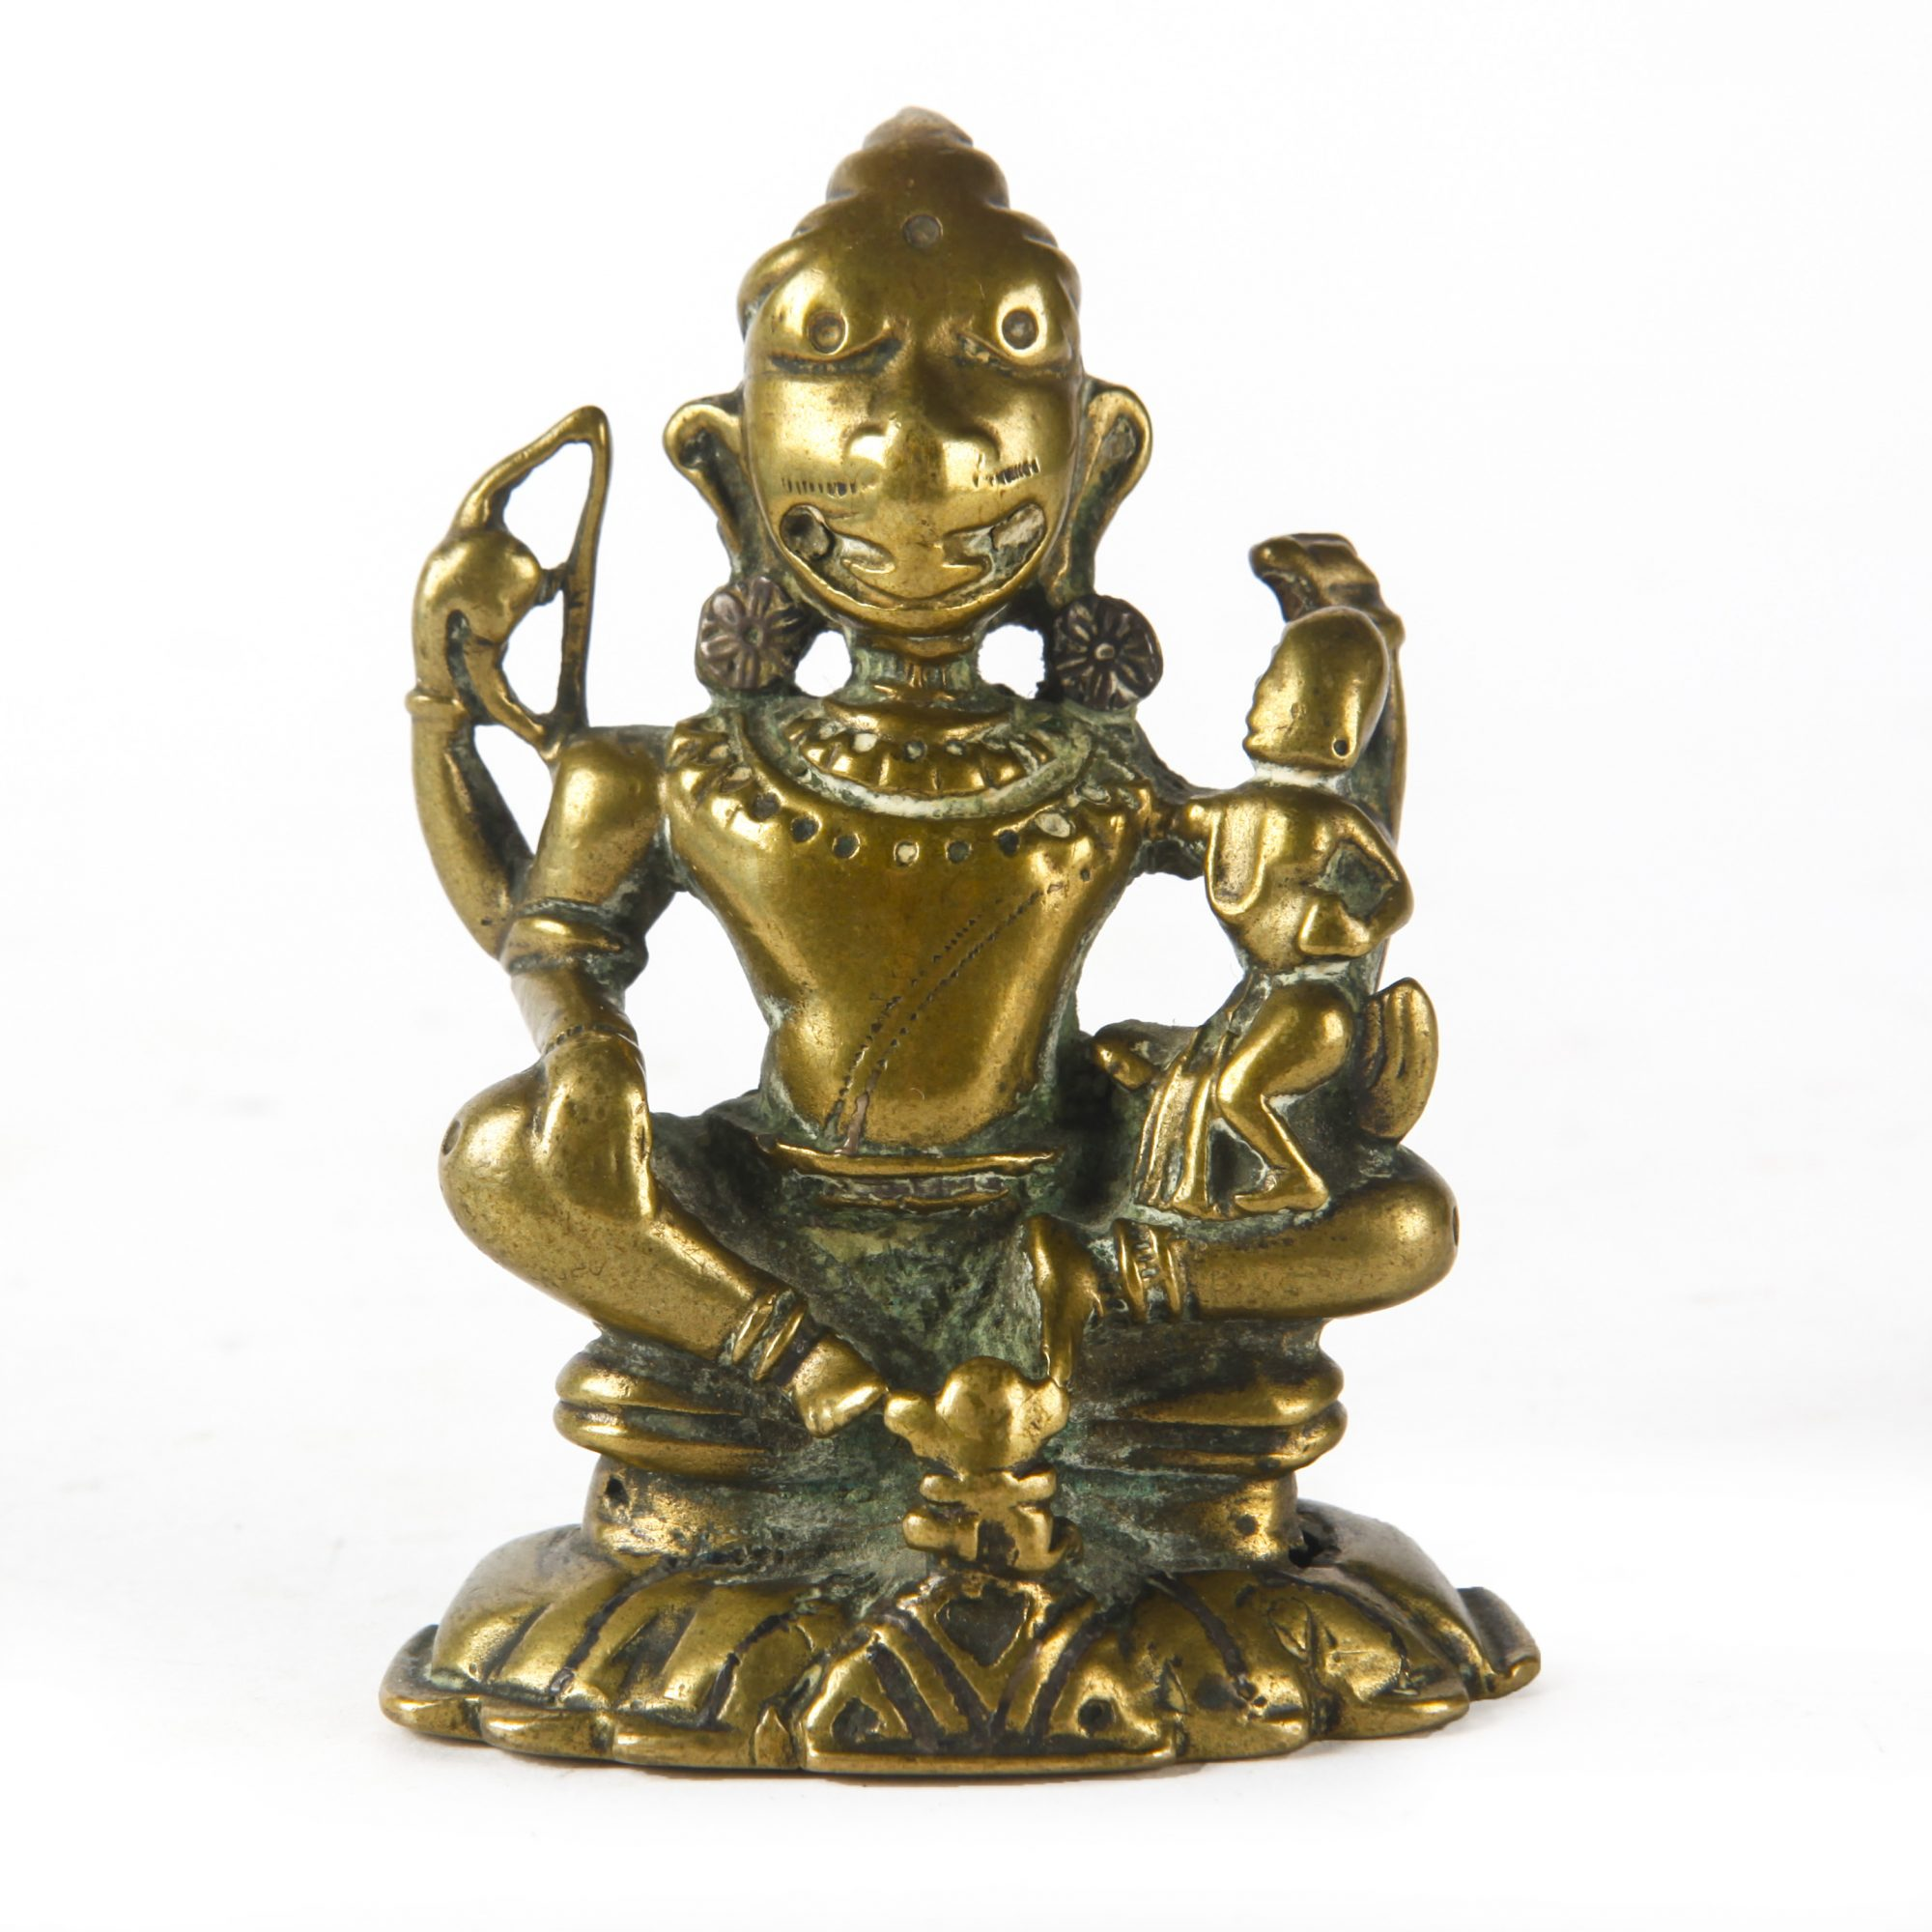 12TH CENTURY INDIA BRONZE FIGURE OF NARASIMHA